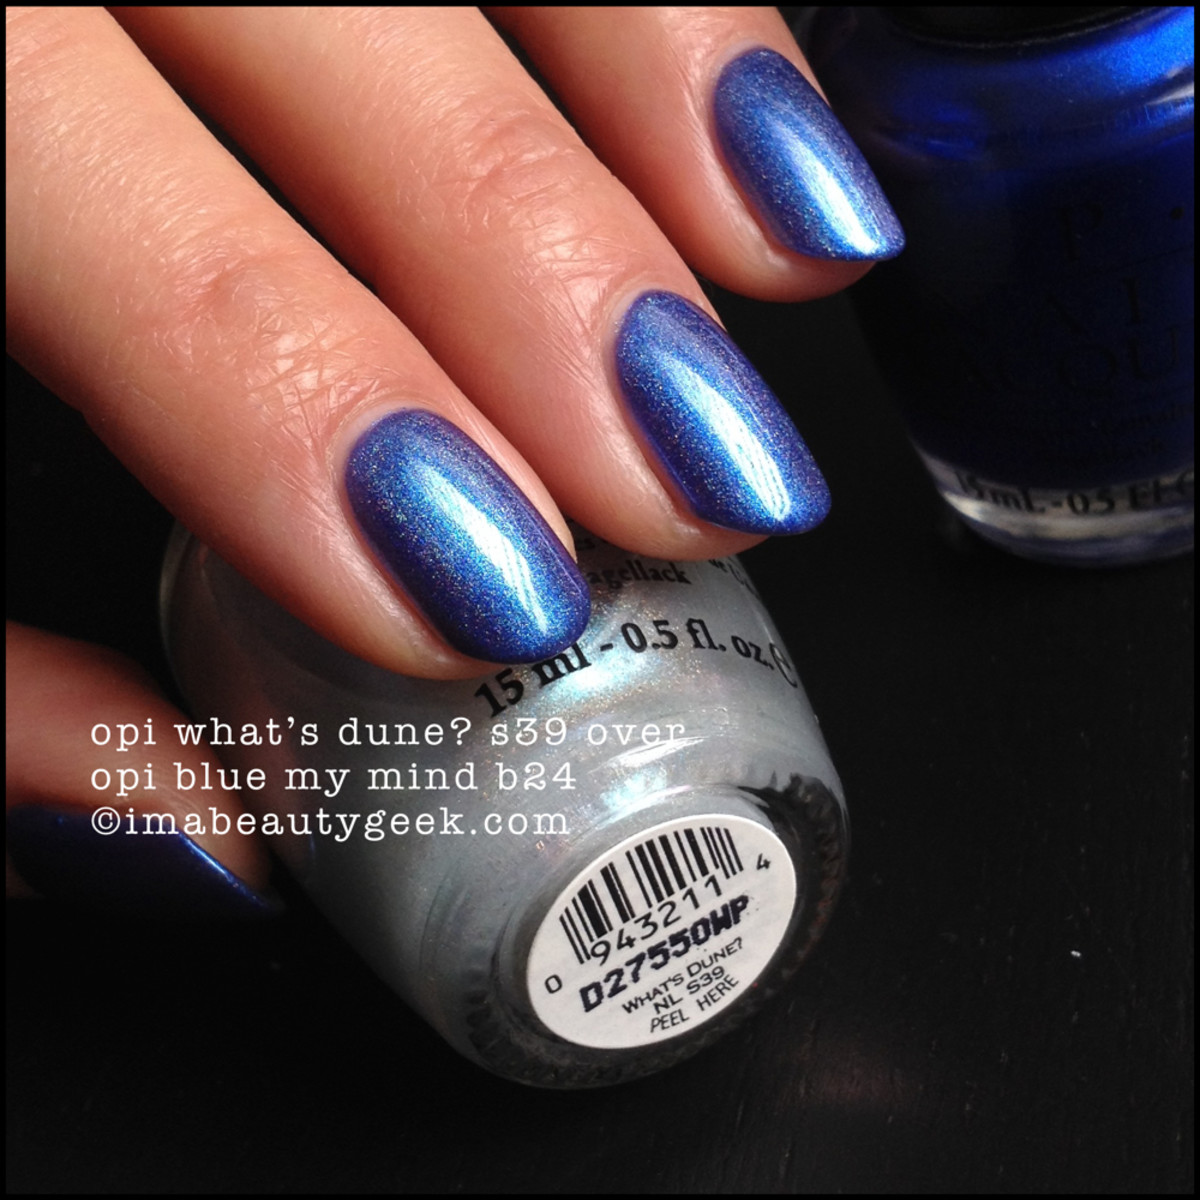 OPI What's Dune S39 2003 over OPI Blue My Mind B24